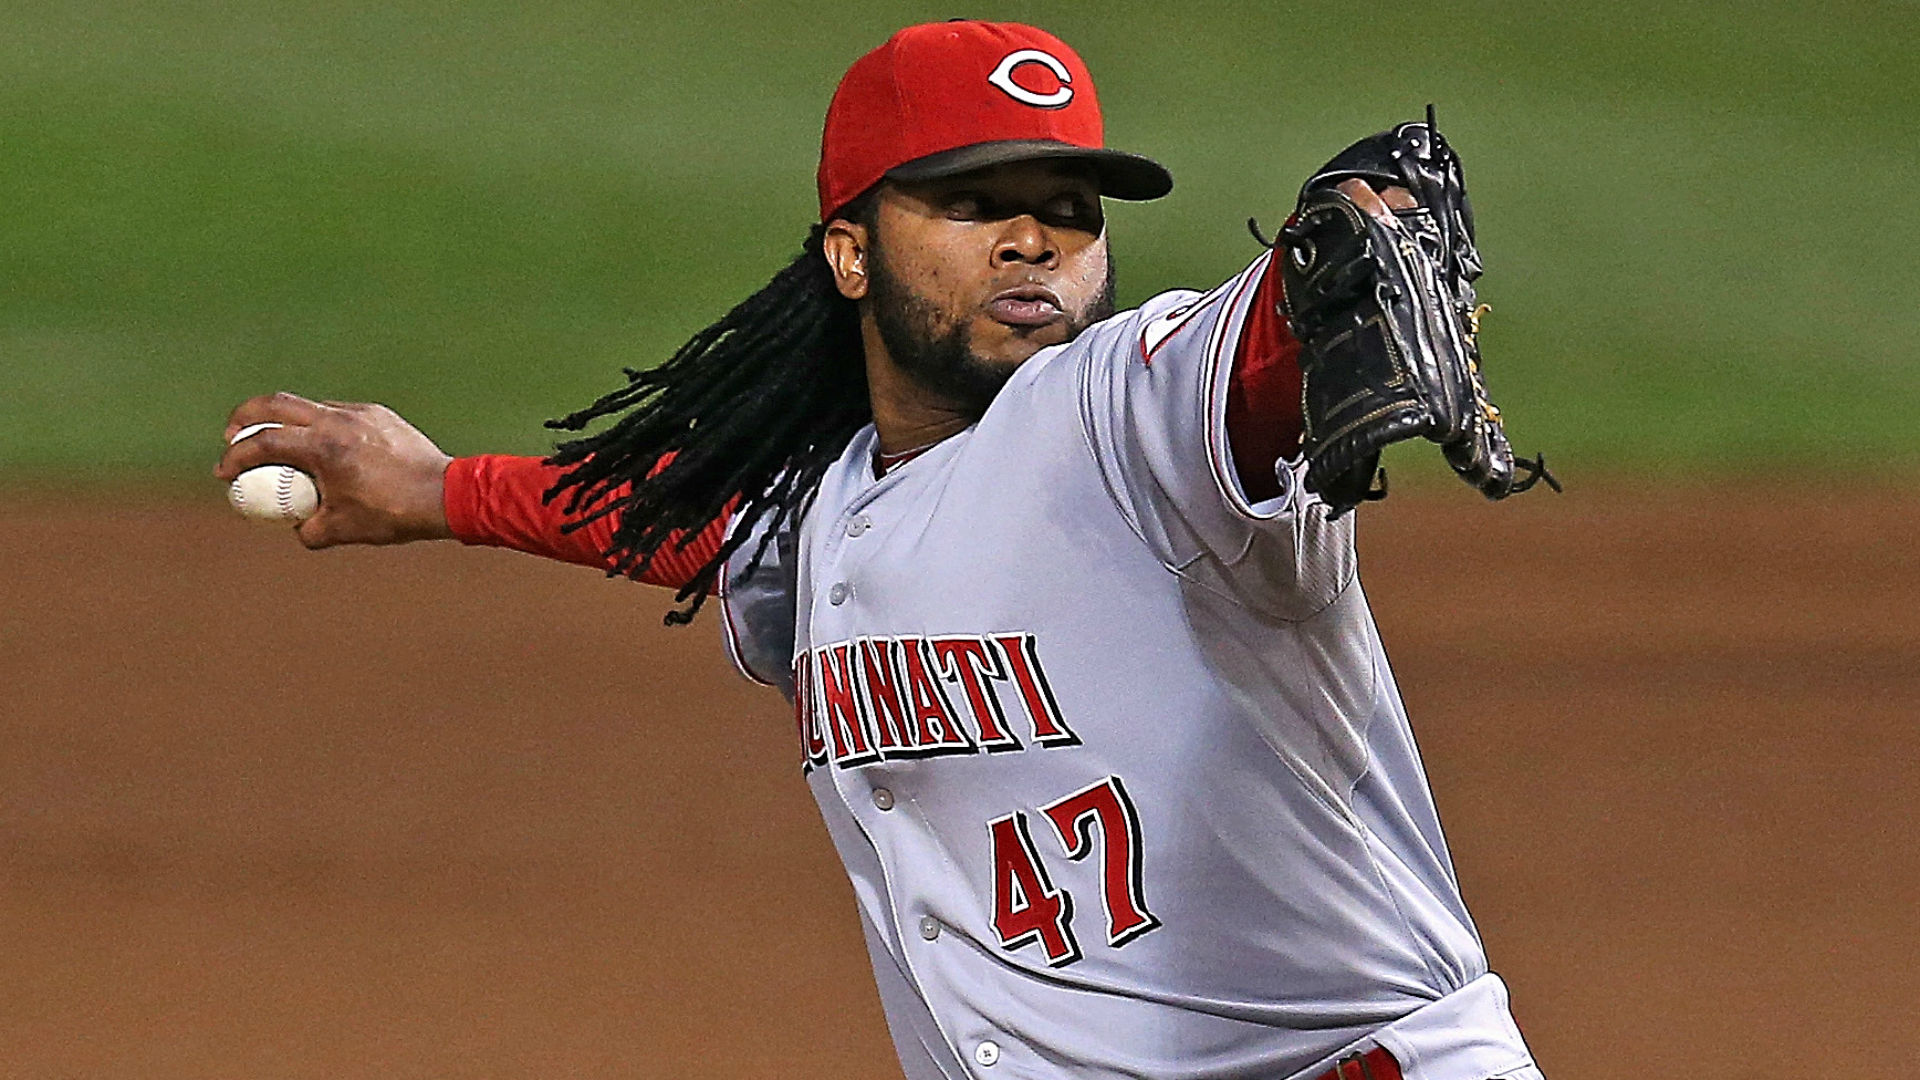 MLB trade rumor: Astros interested in Reds All-Star Johnny Cueto